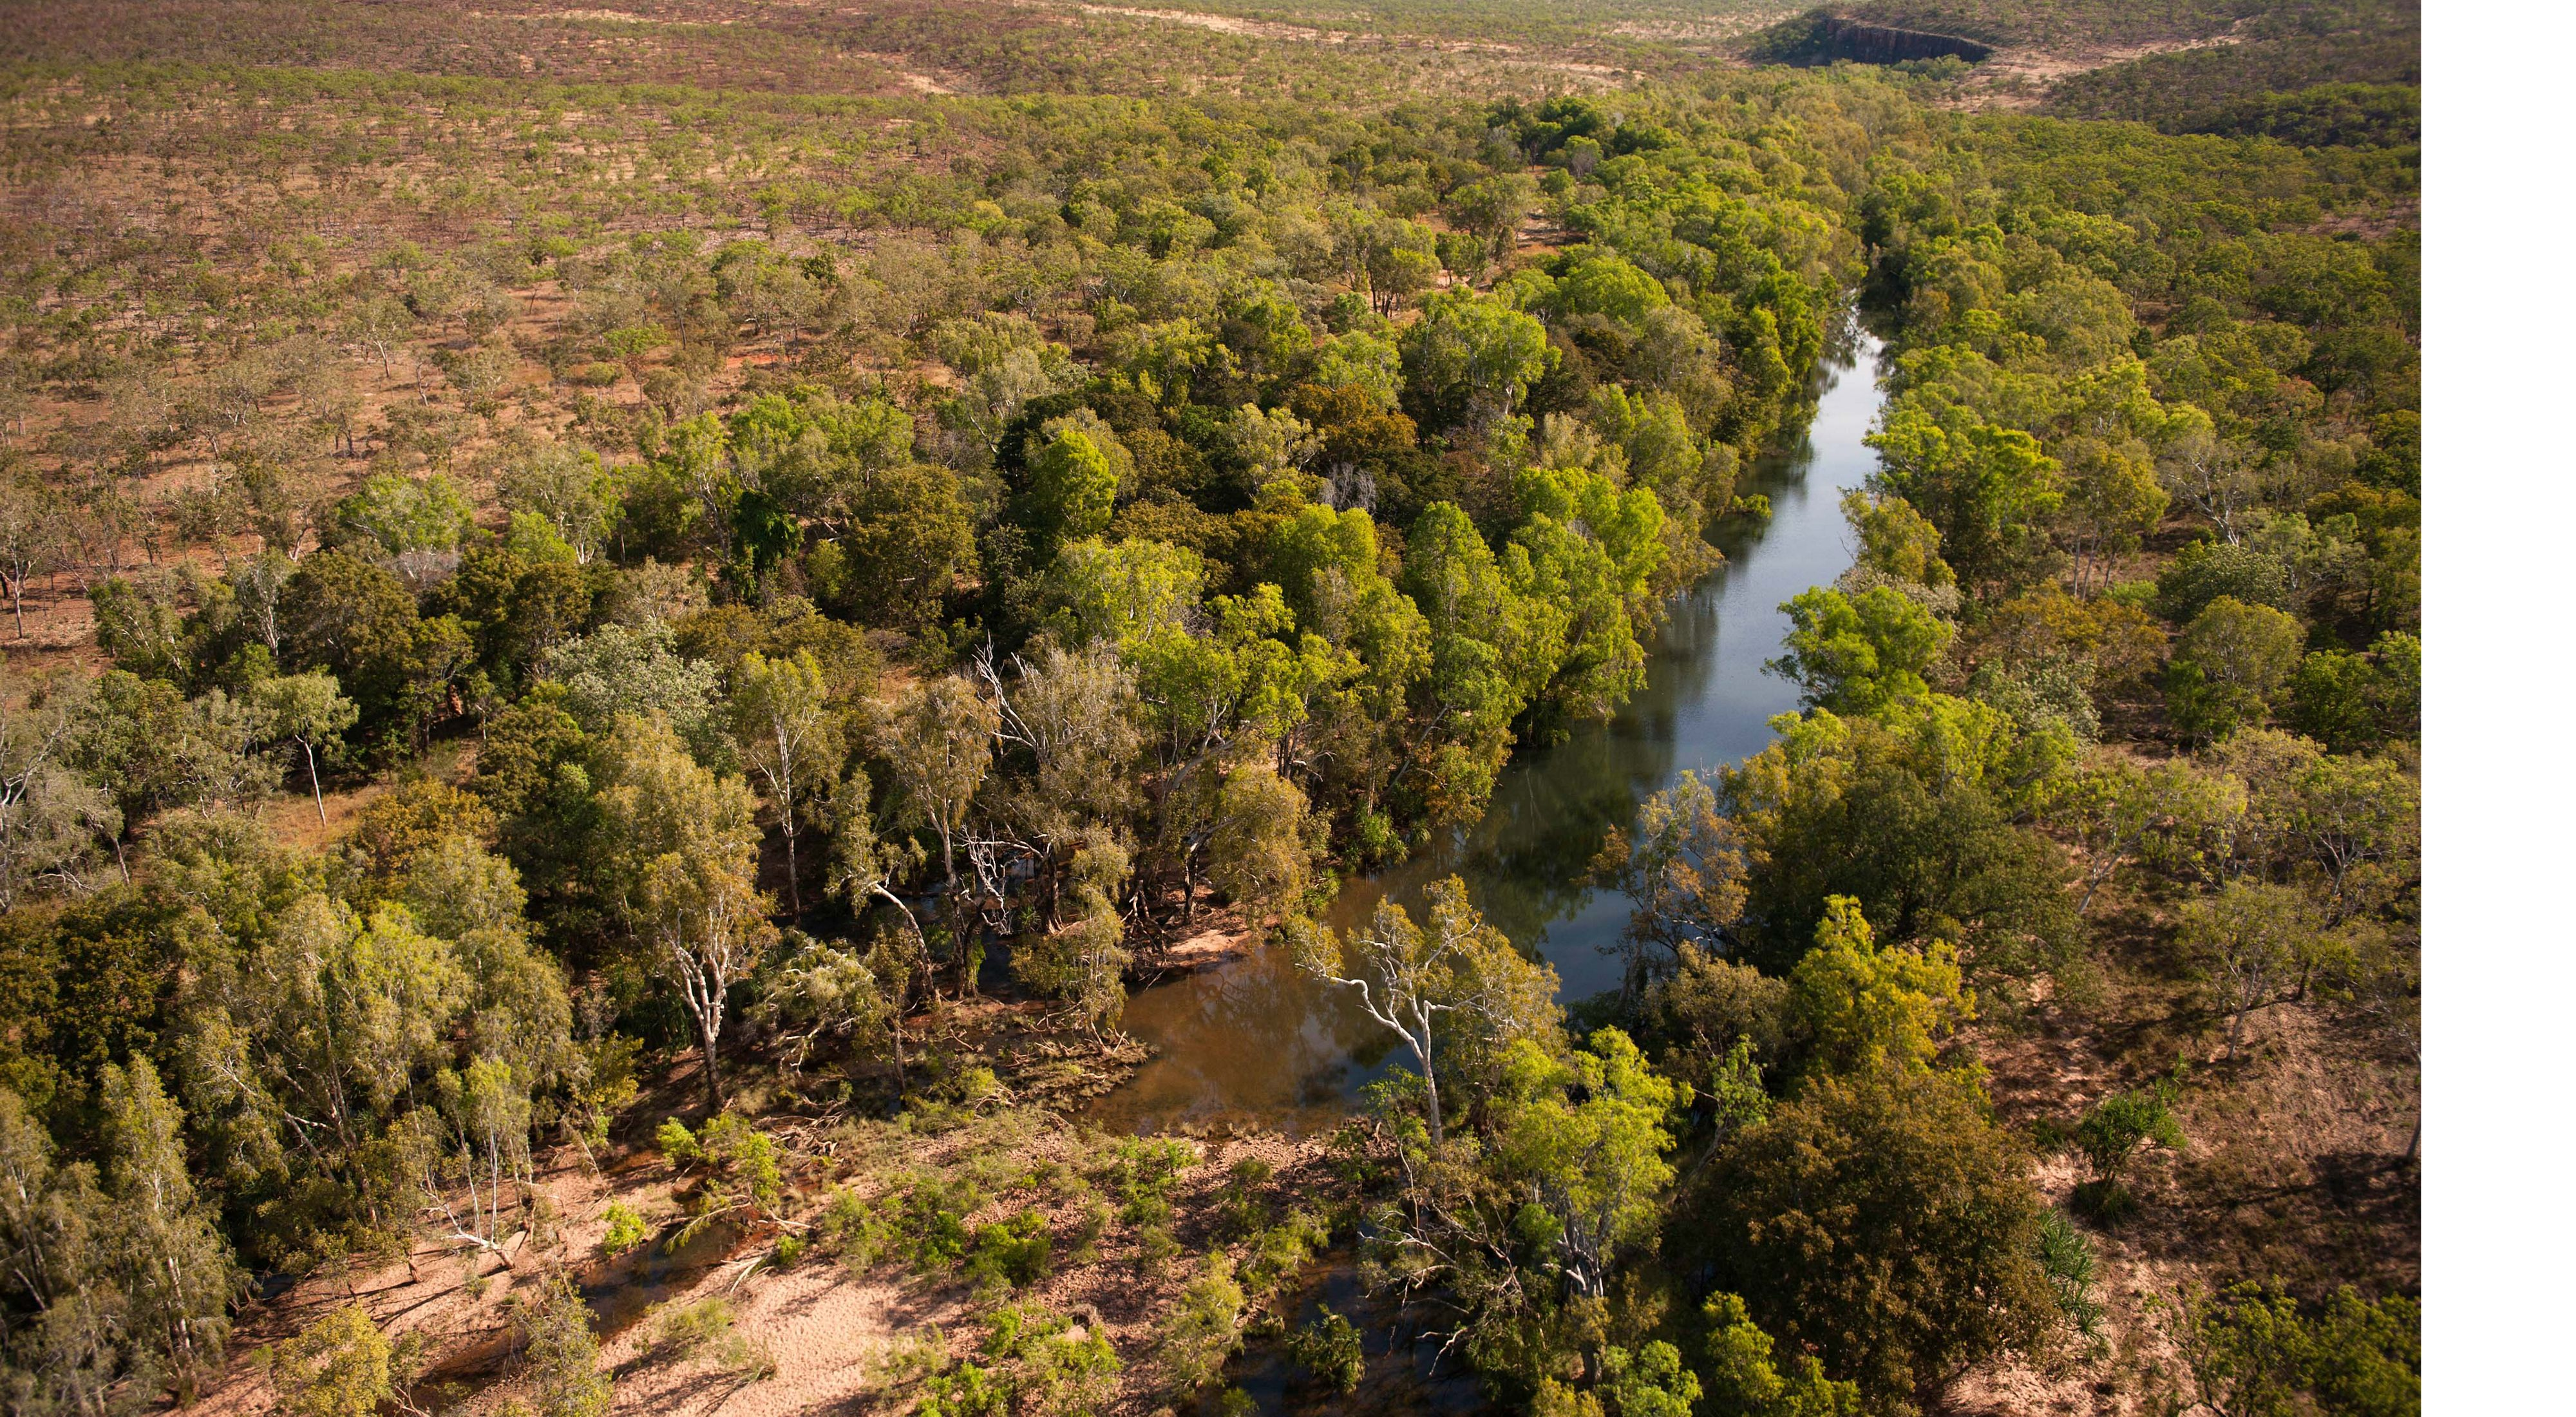 is home to a plethora of unique species and some of the world's oldest human artwork, this area is ecologically, socially and culturally vital for Australia.